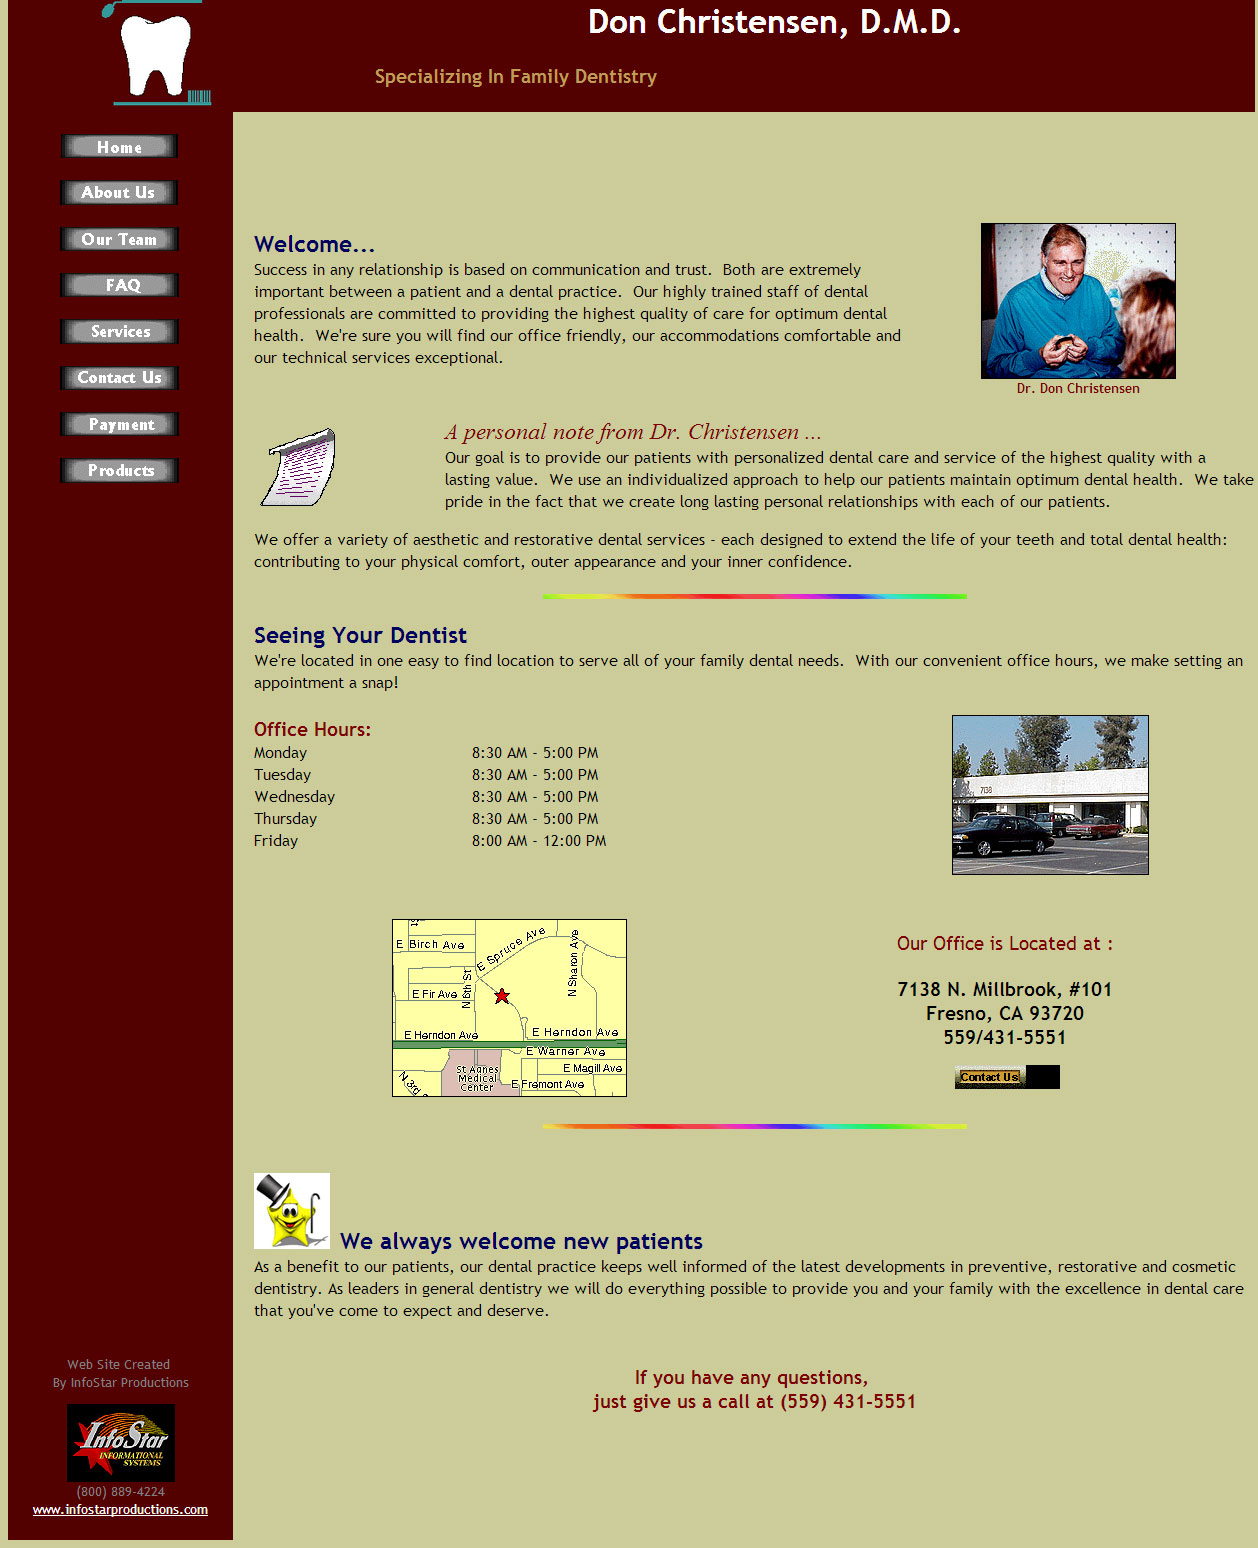 Dr. Christensen's Old Website ...